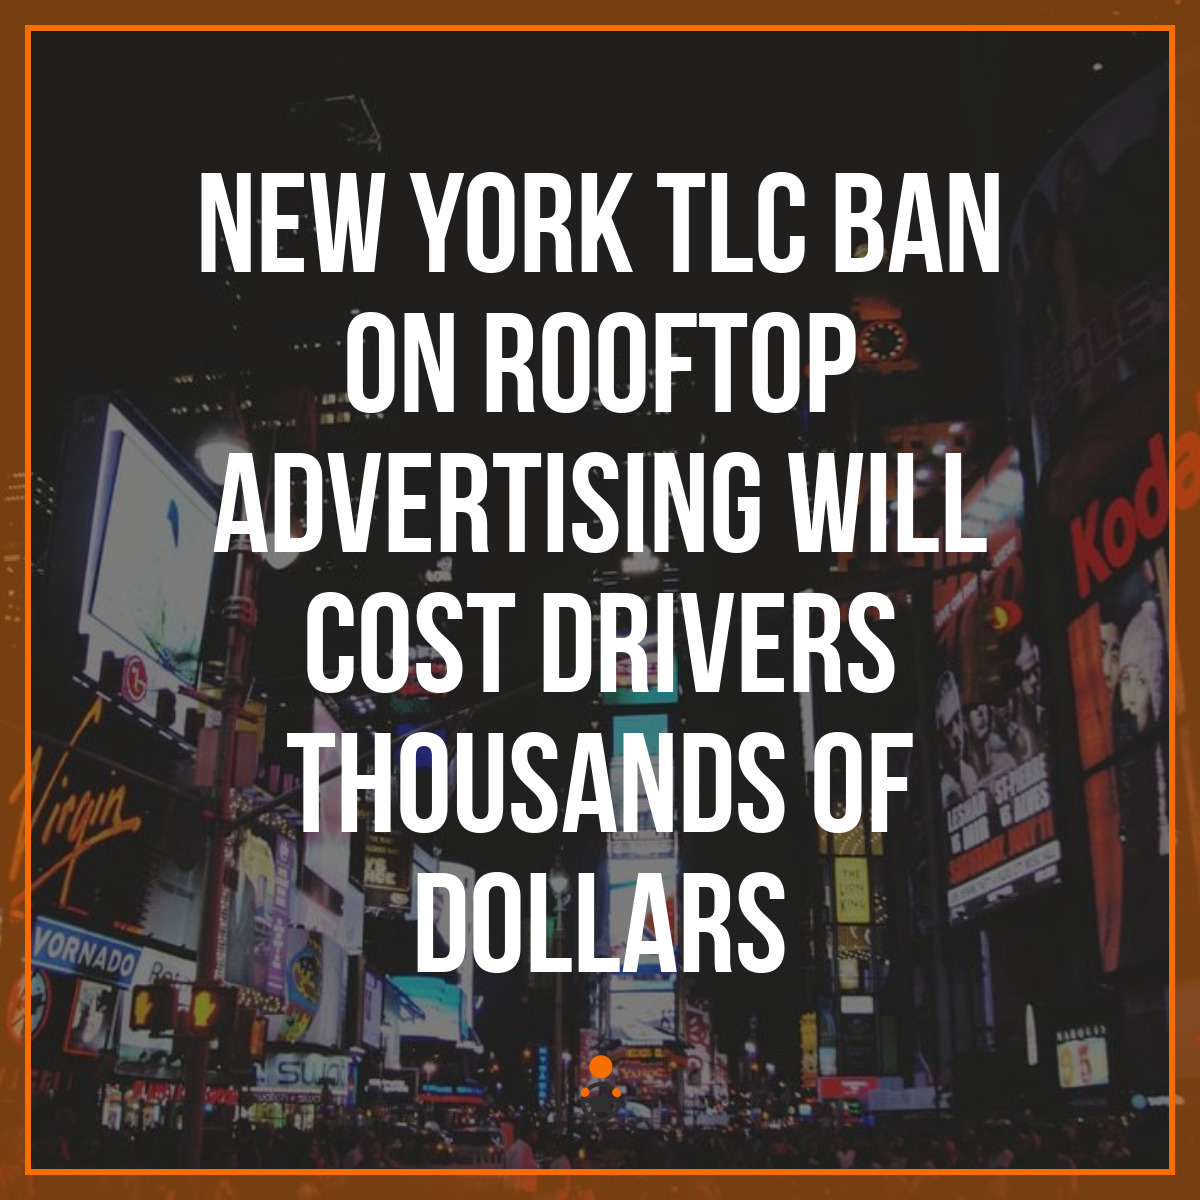 New York TLC Ban on Rooftop Advertising Will Cost Drivers Thousands of Dollars